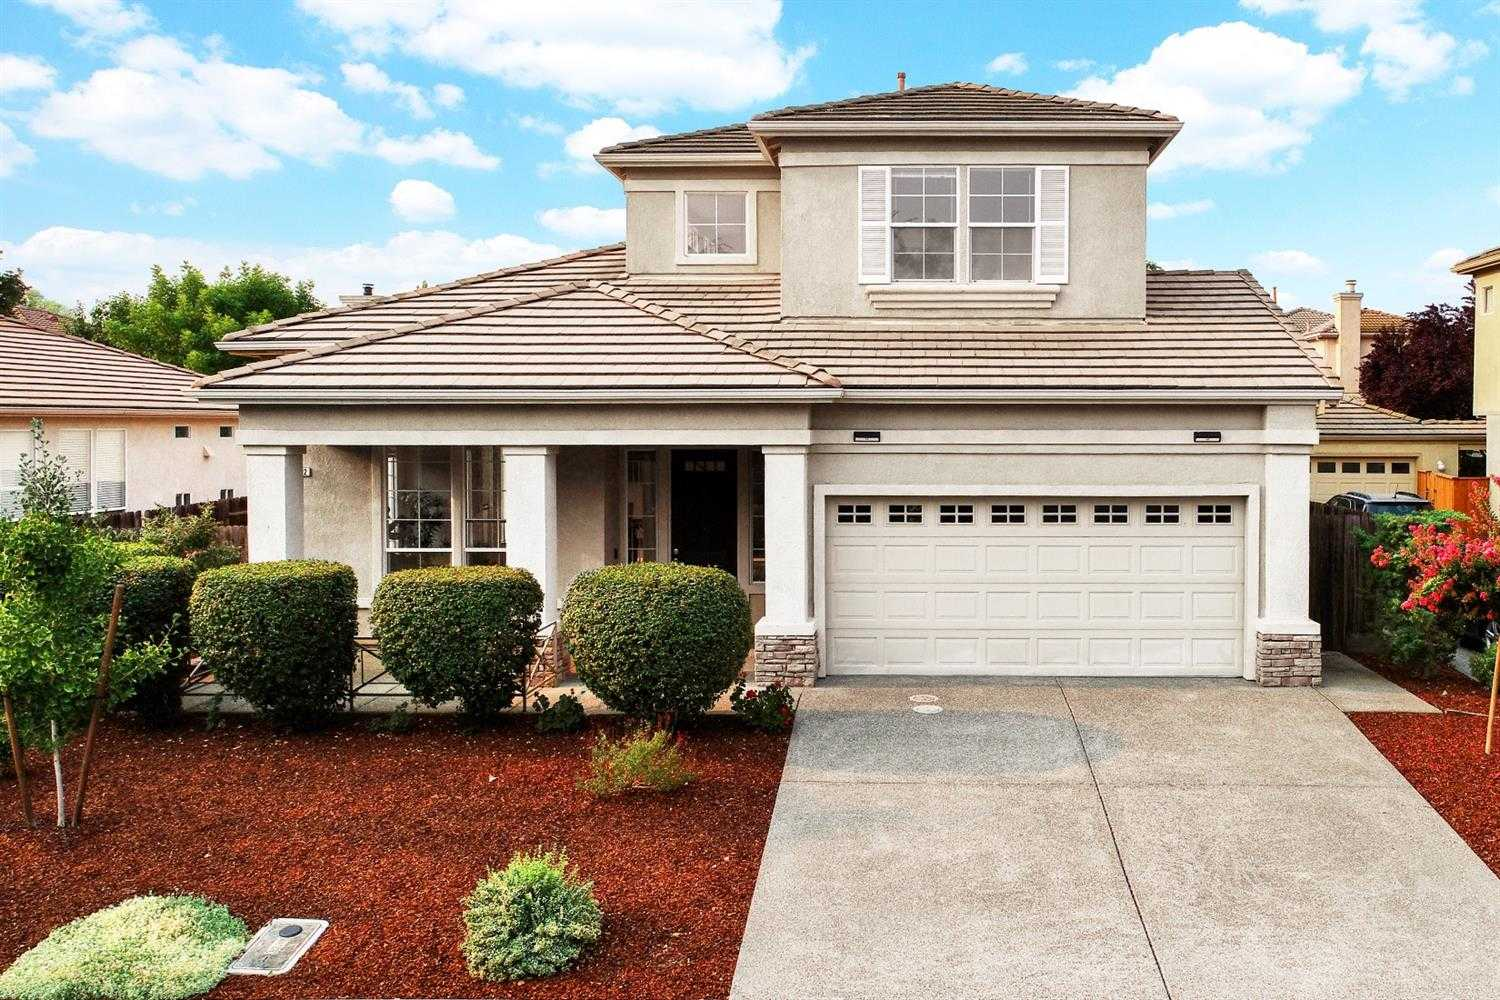 $960,000 - 4Br/3Ba -  for Sale in Evergreen, Davis